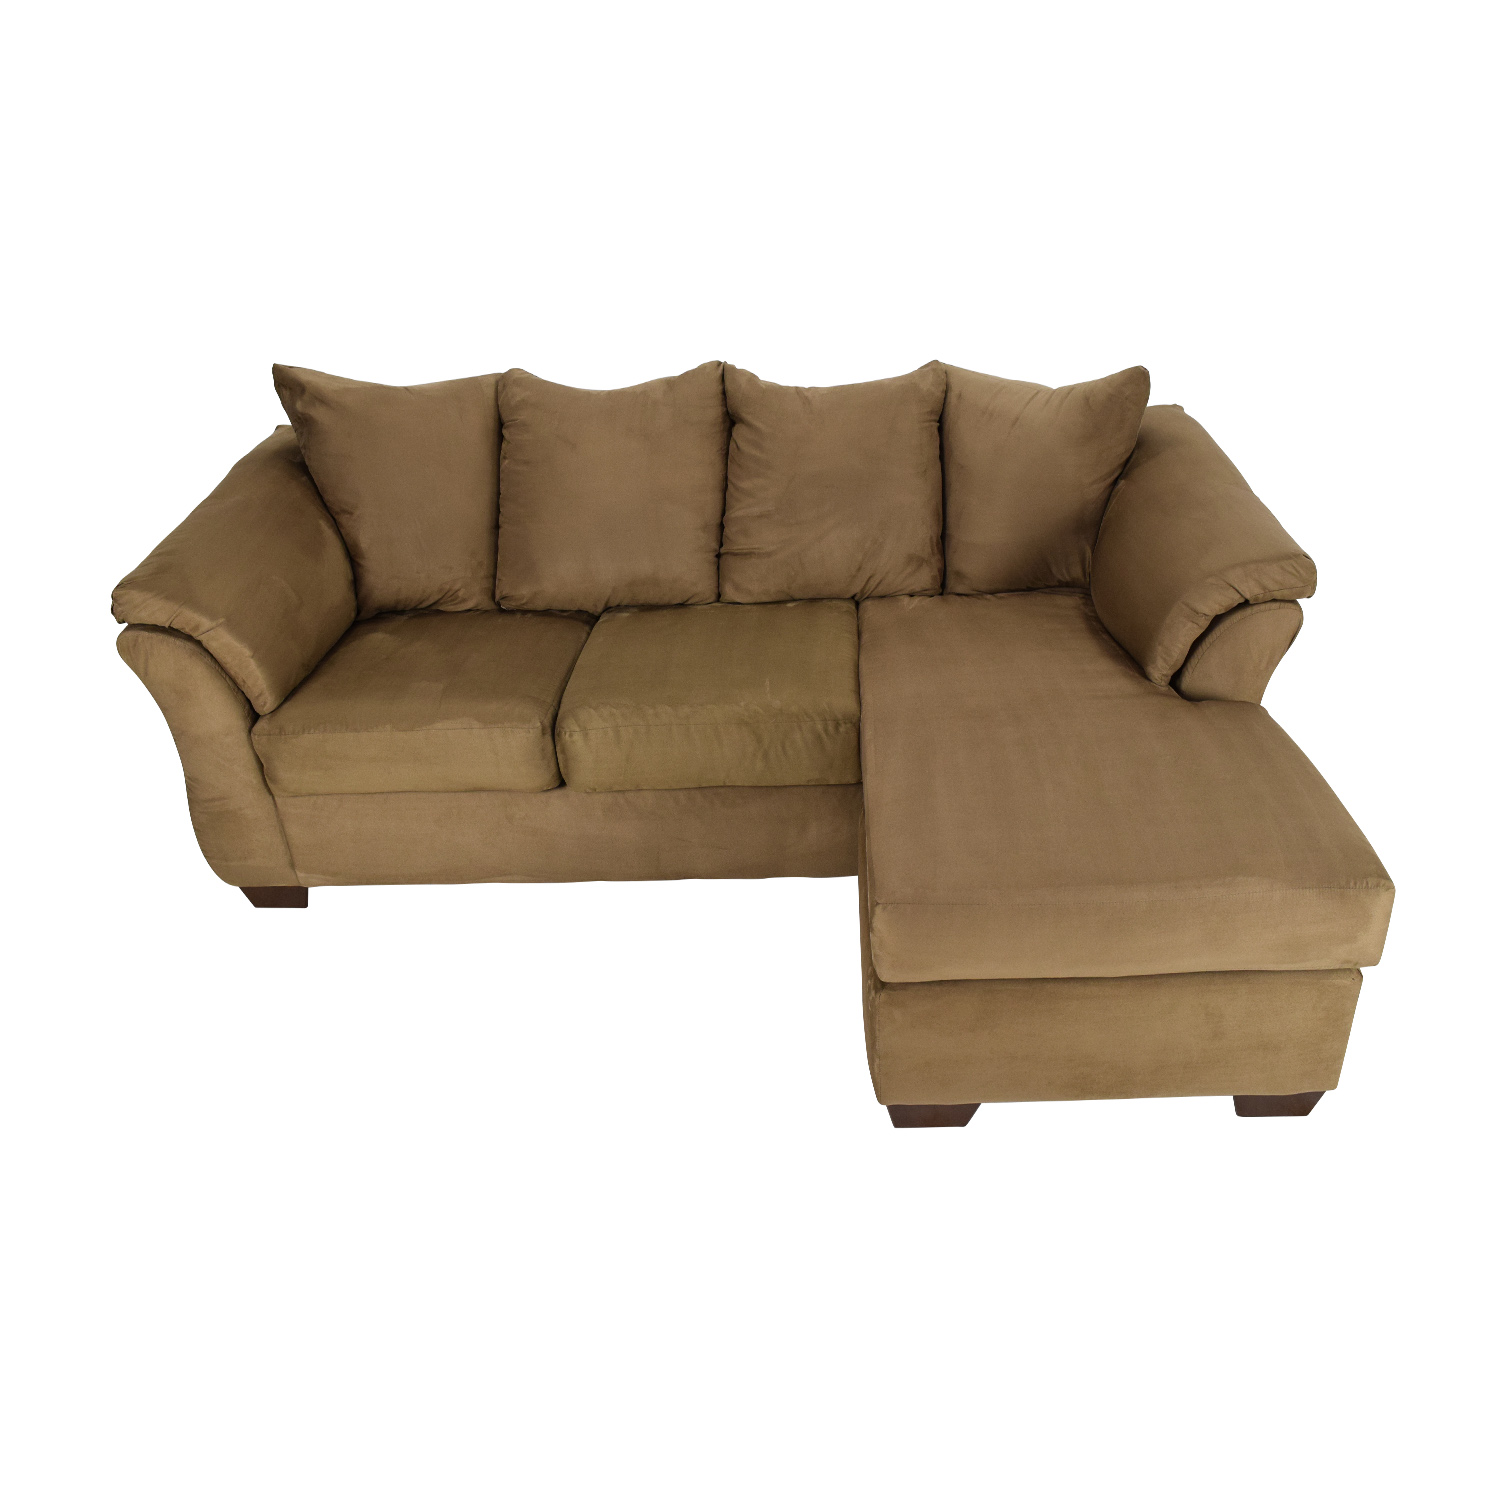 jennifer convertible sofas on sale childs sofa bed nz bellona couch a budget